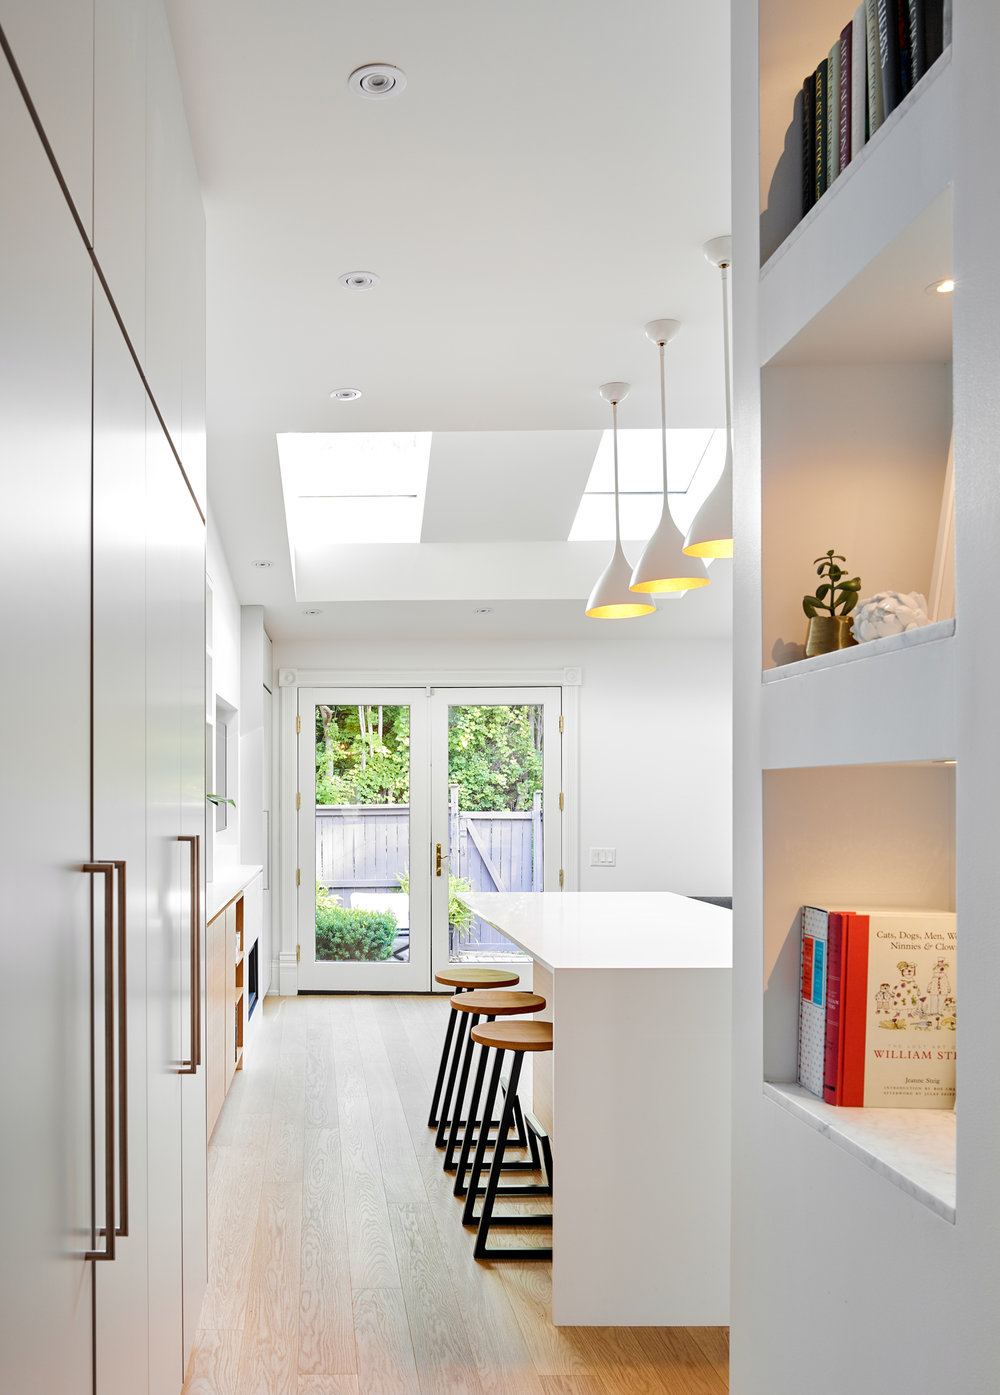 New kitchen and dining area of the house in white with ample natural light